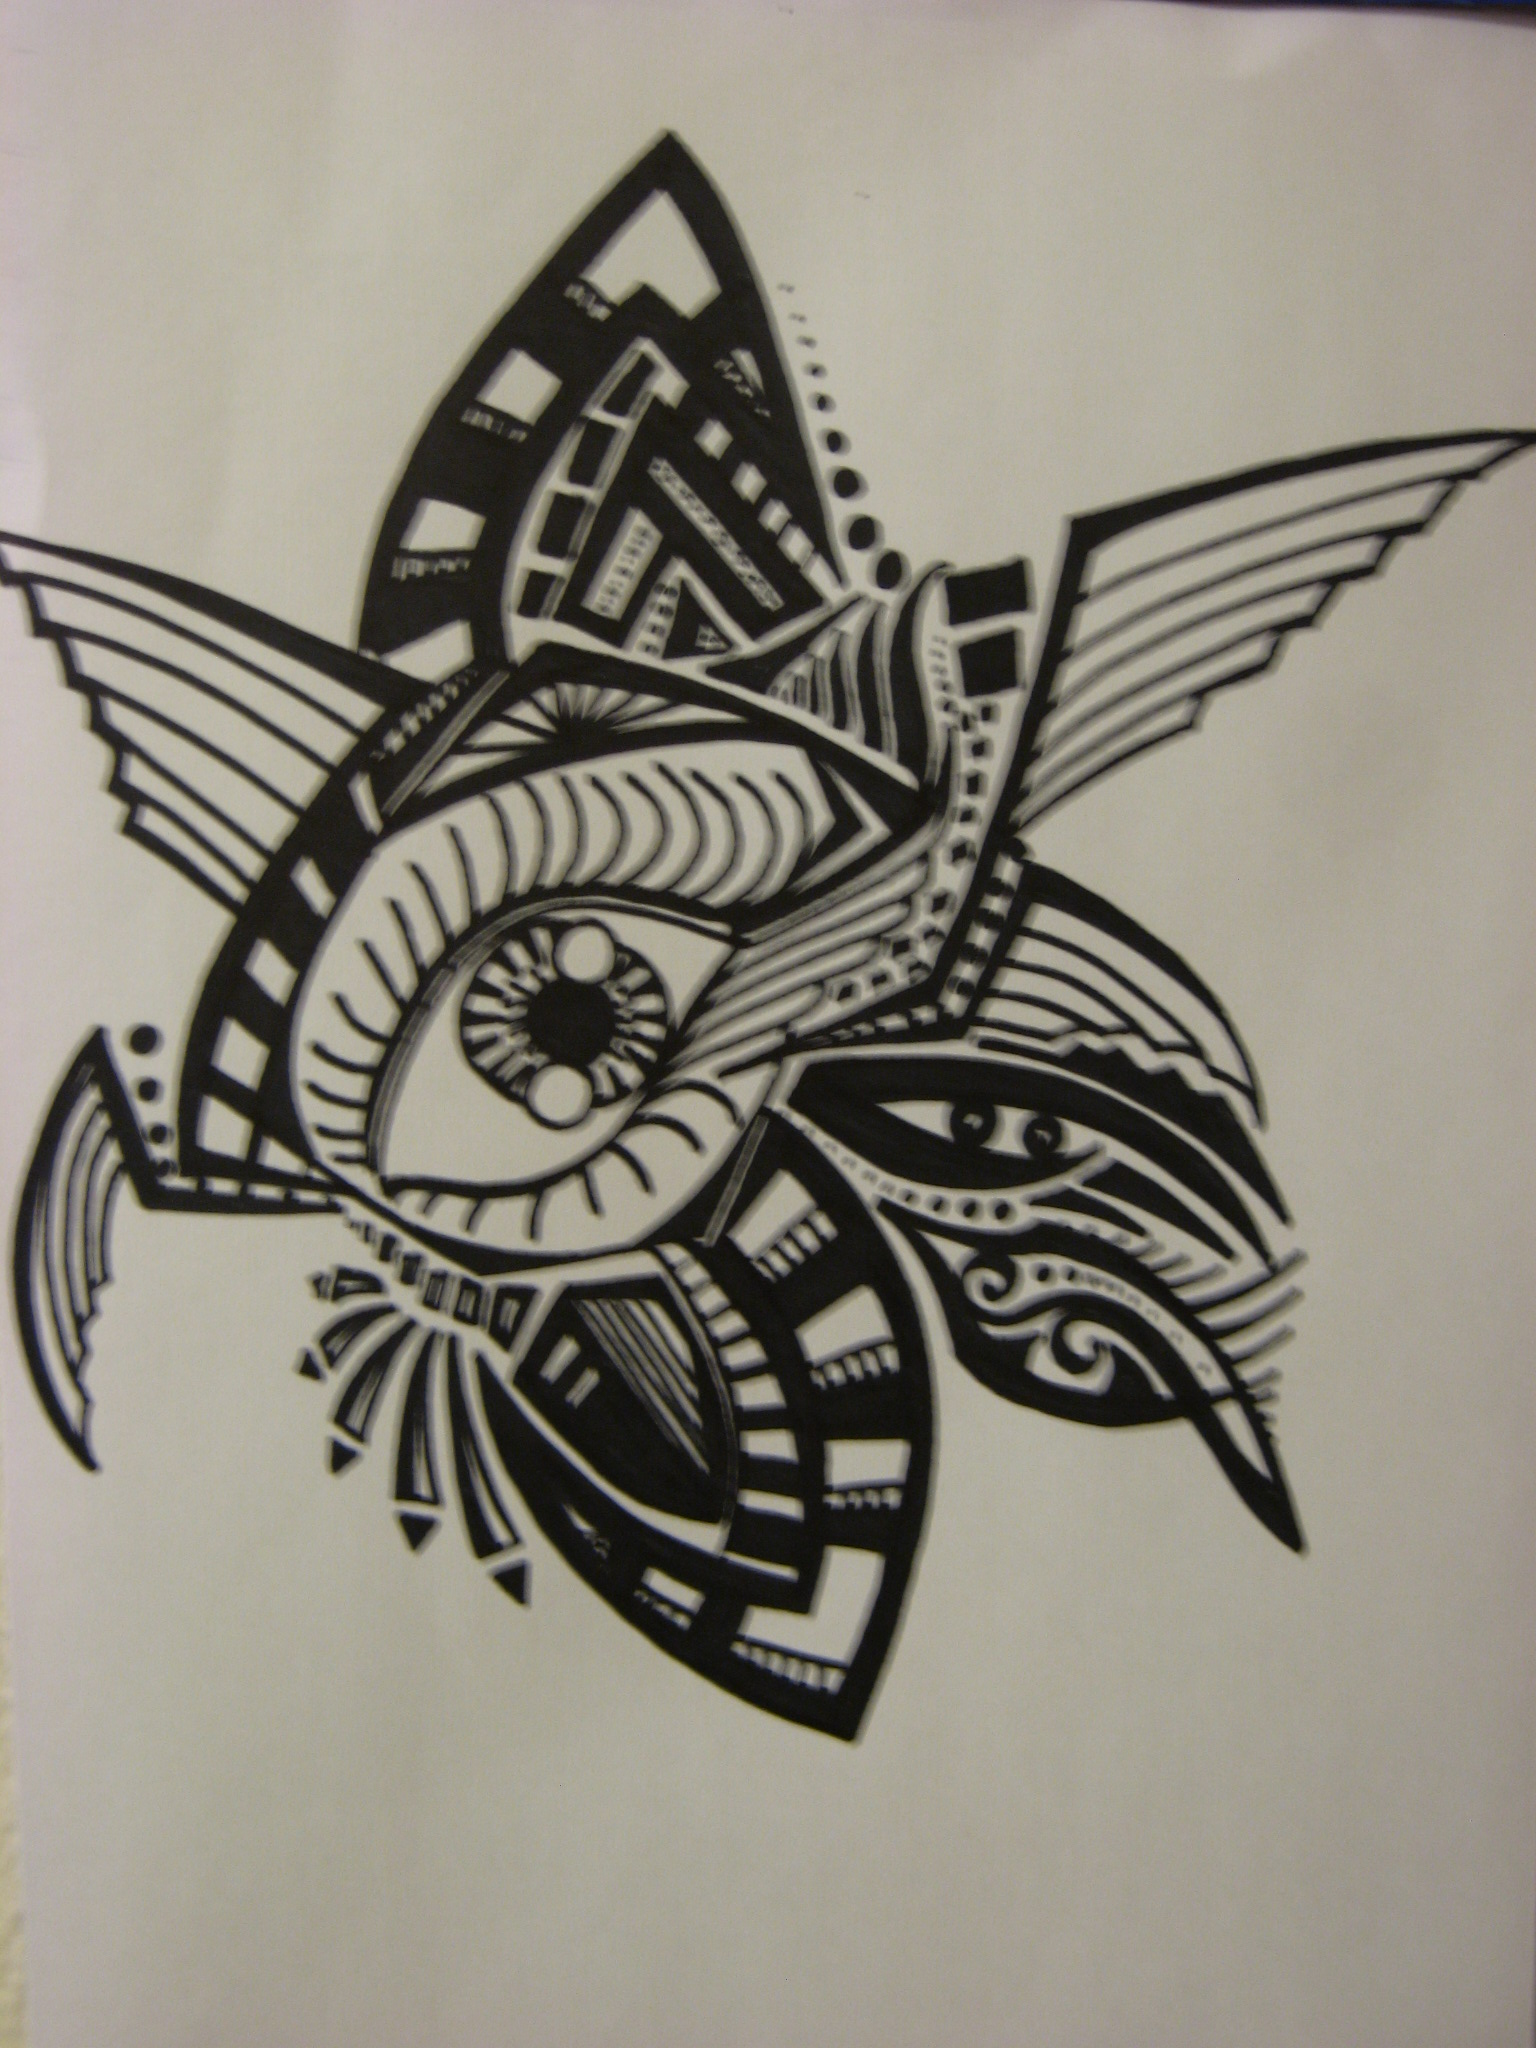 1536x2048 Interior Designool Designs To Draw With Sharpie Images About